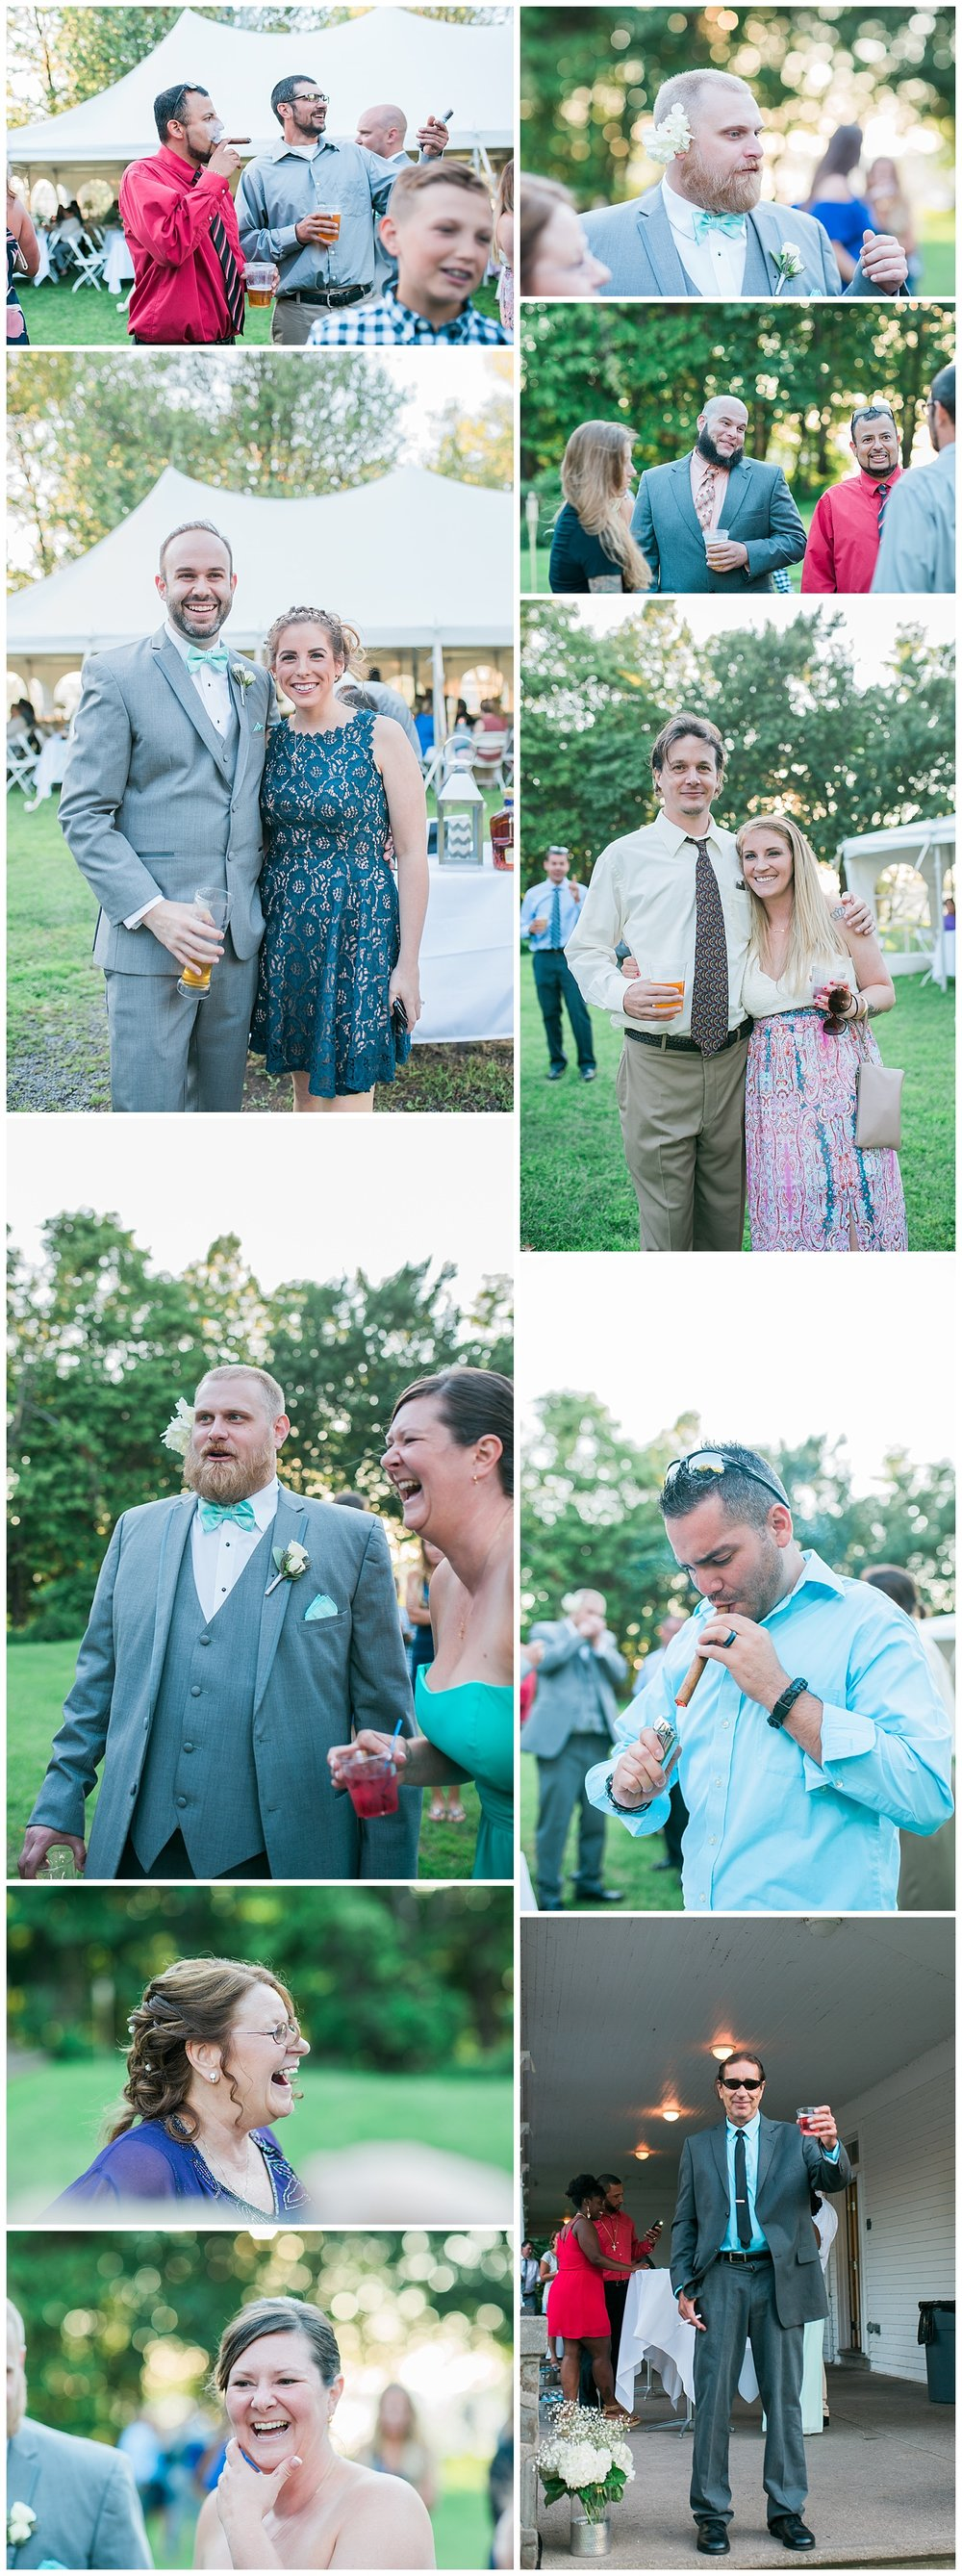 Sean and Andrea - Webster wedding - lass and beau-1277_Buffalo wedding photography.jpg